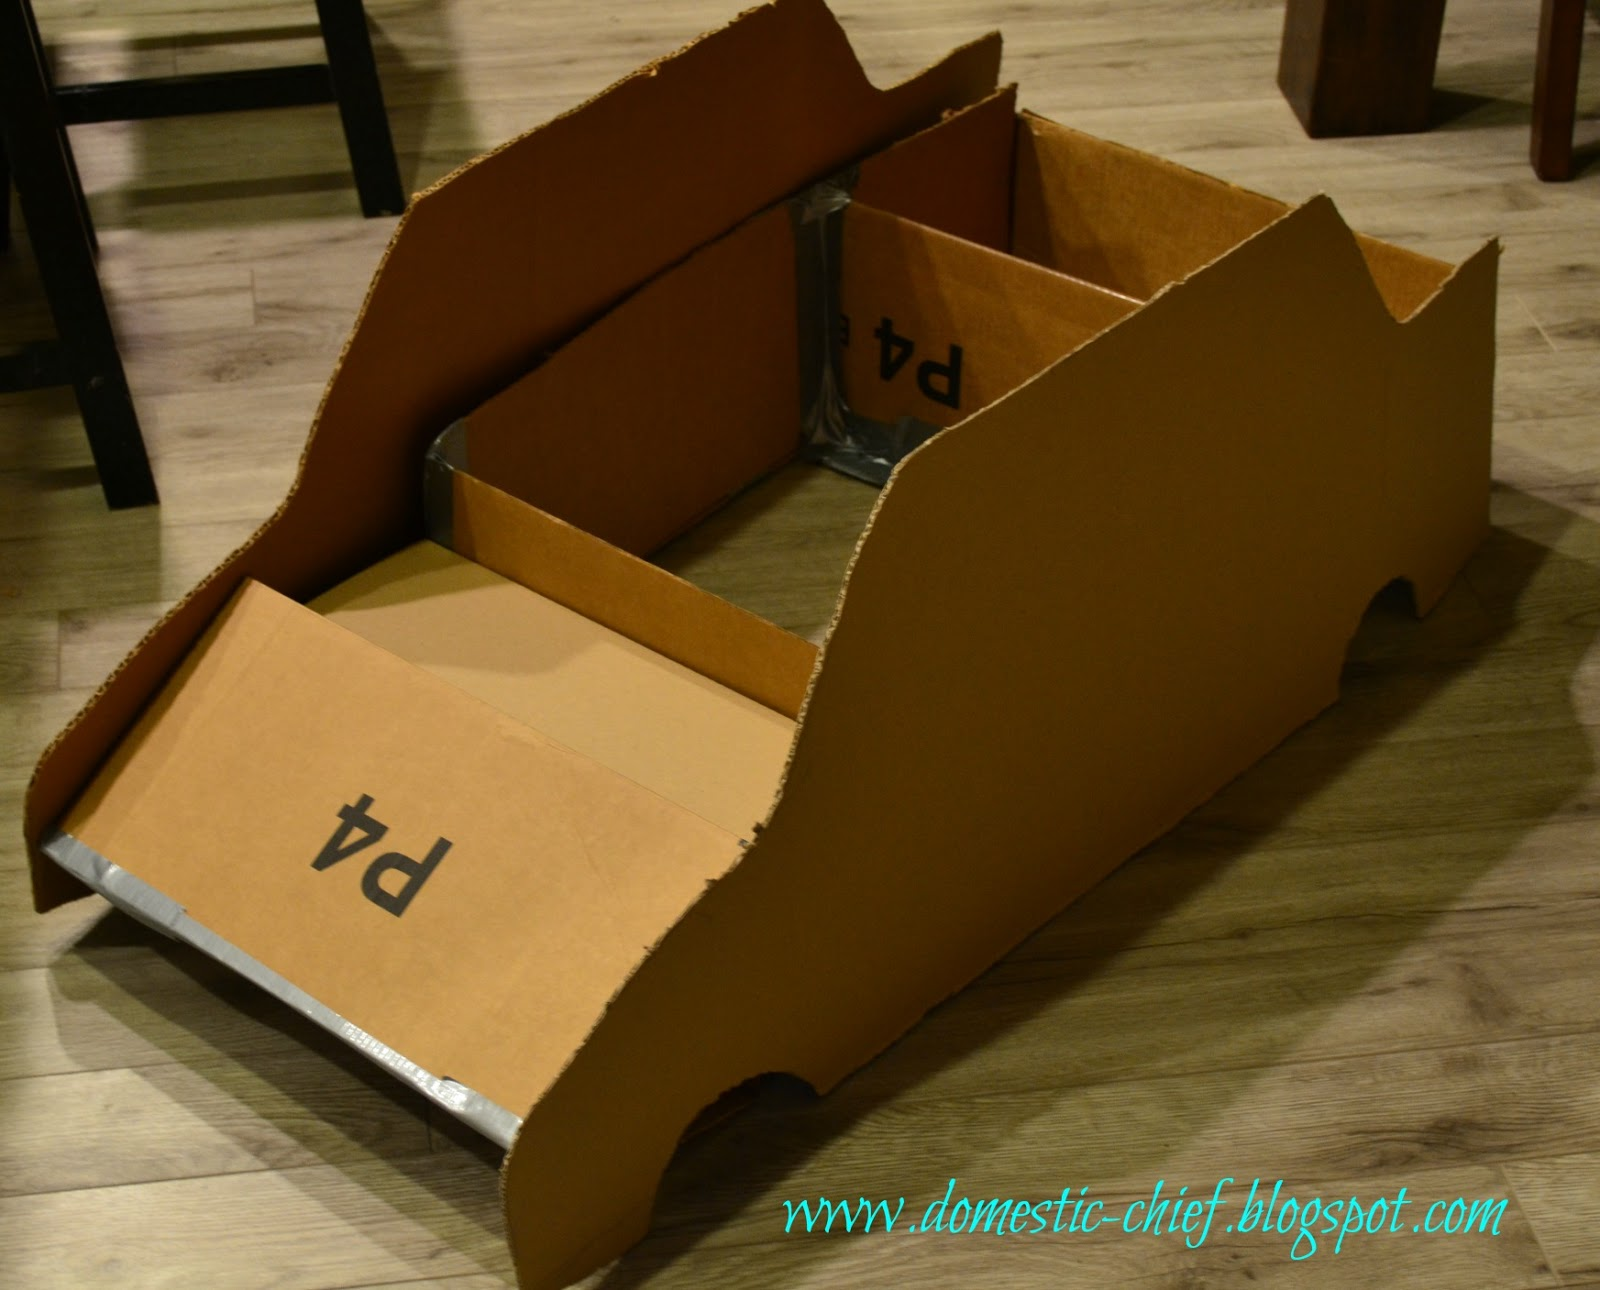 chief domestic officer cardboard box police car